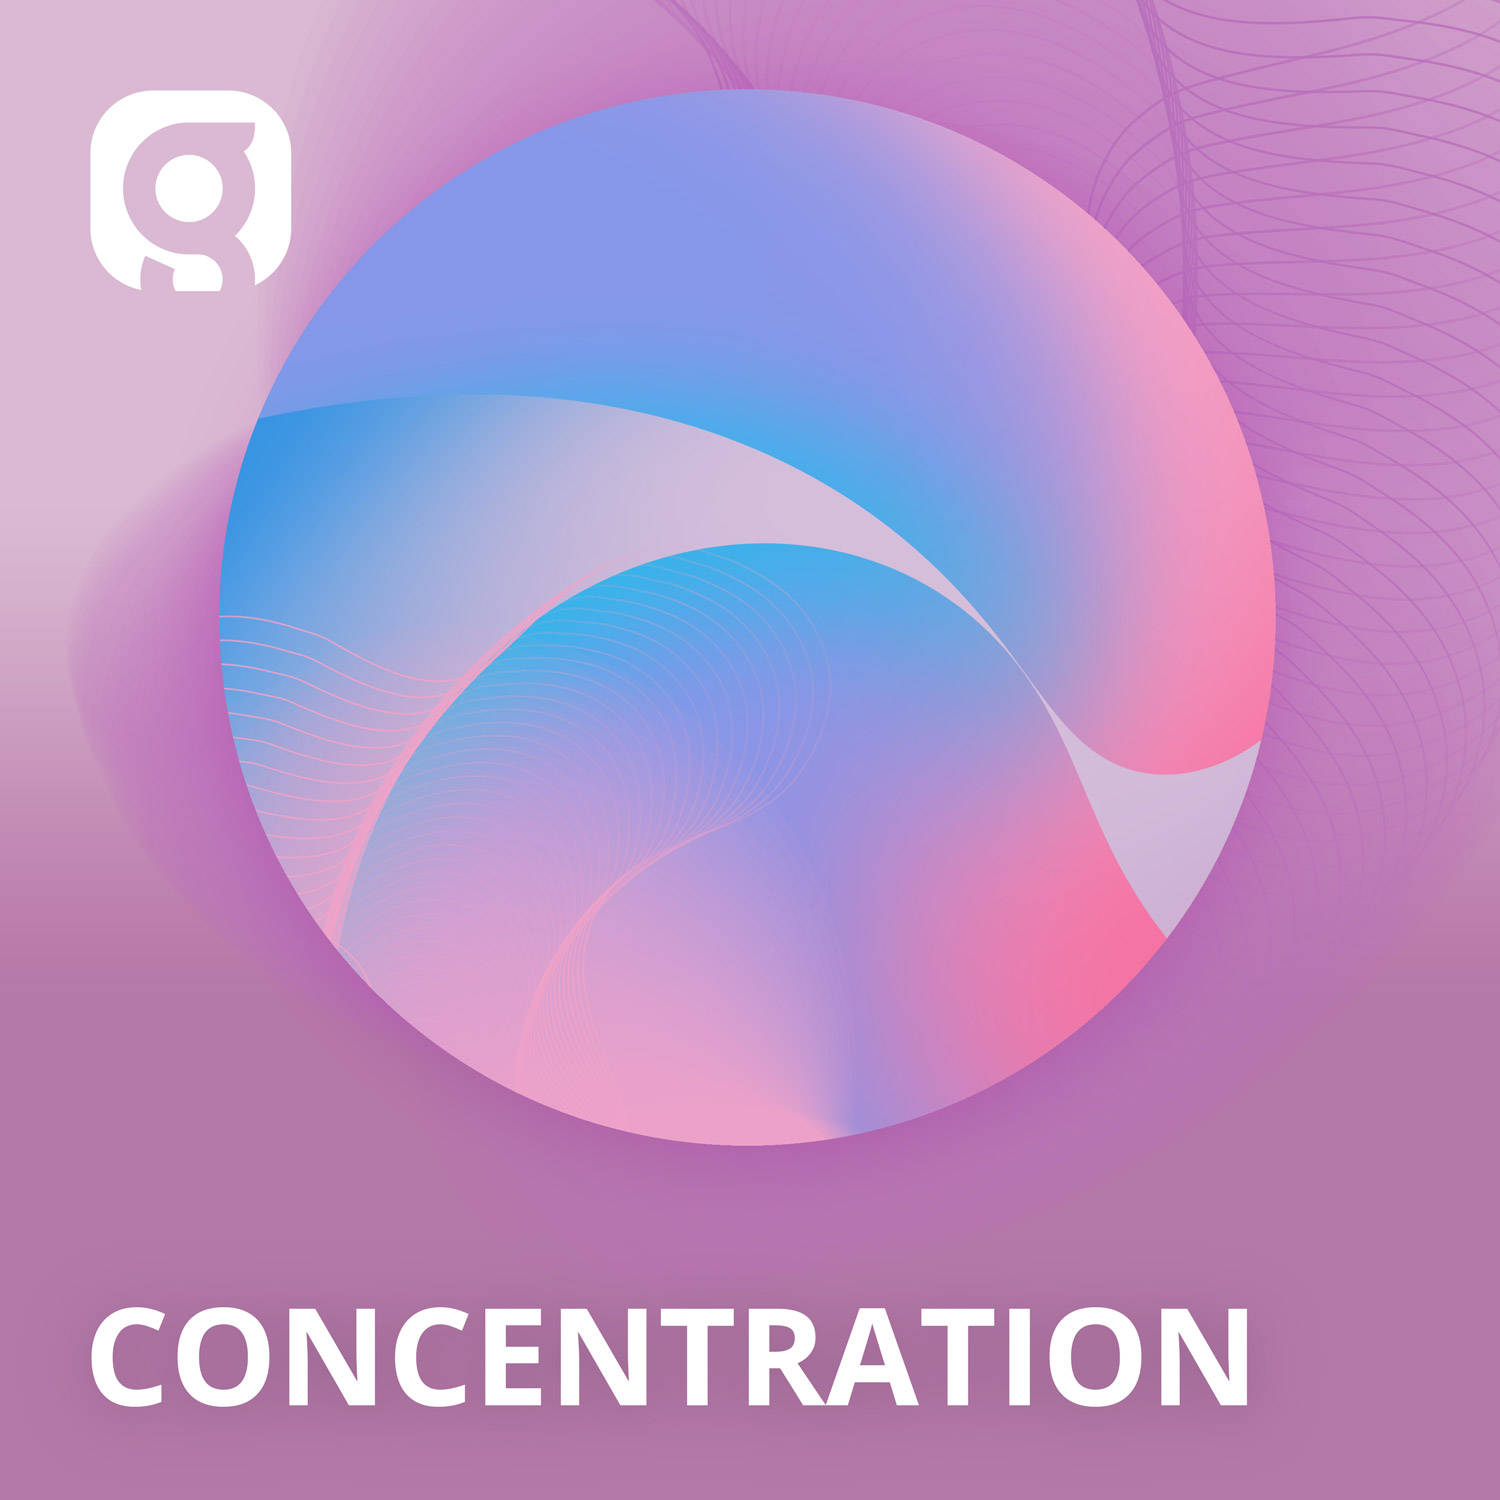 Concentration image